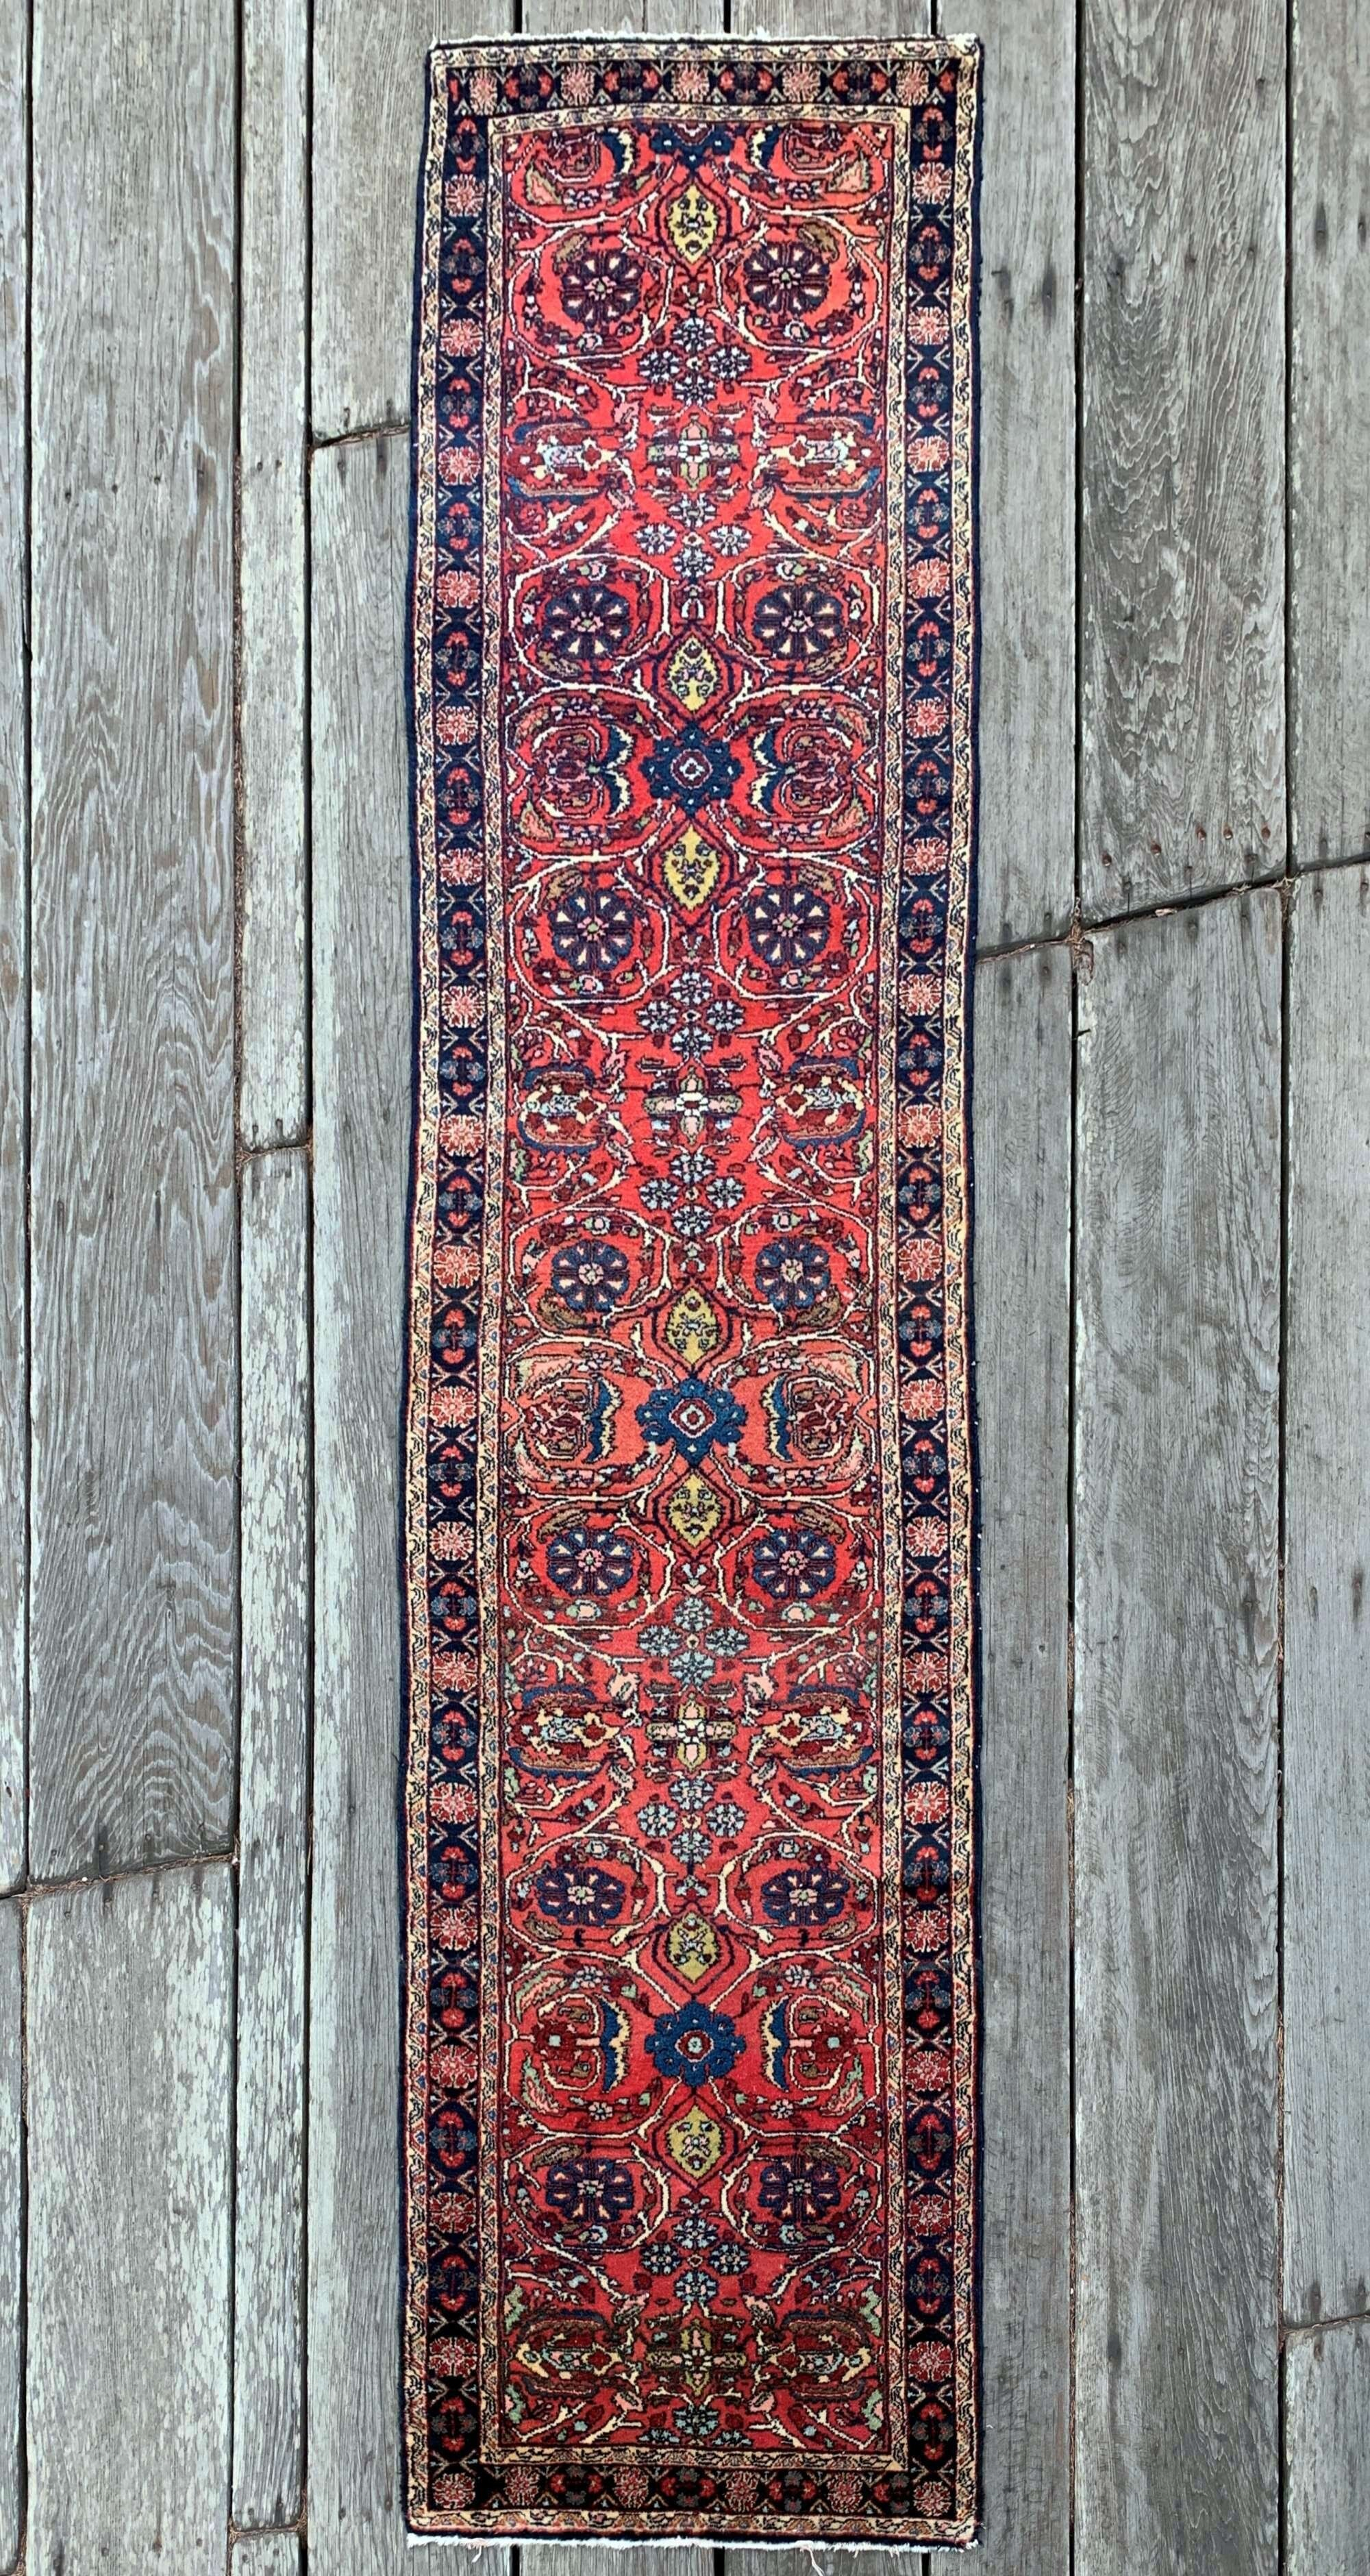 Steelman Rugs Vintage Persian Runner Rug 2 8 X11 3 In 2020 Persian Rug Runners Rug Runner Persian